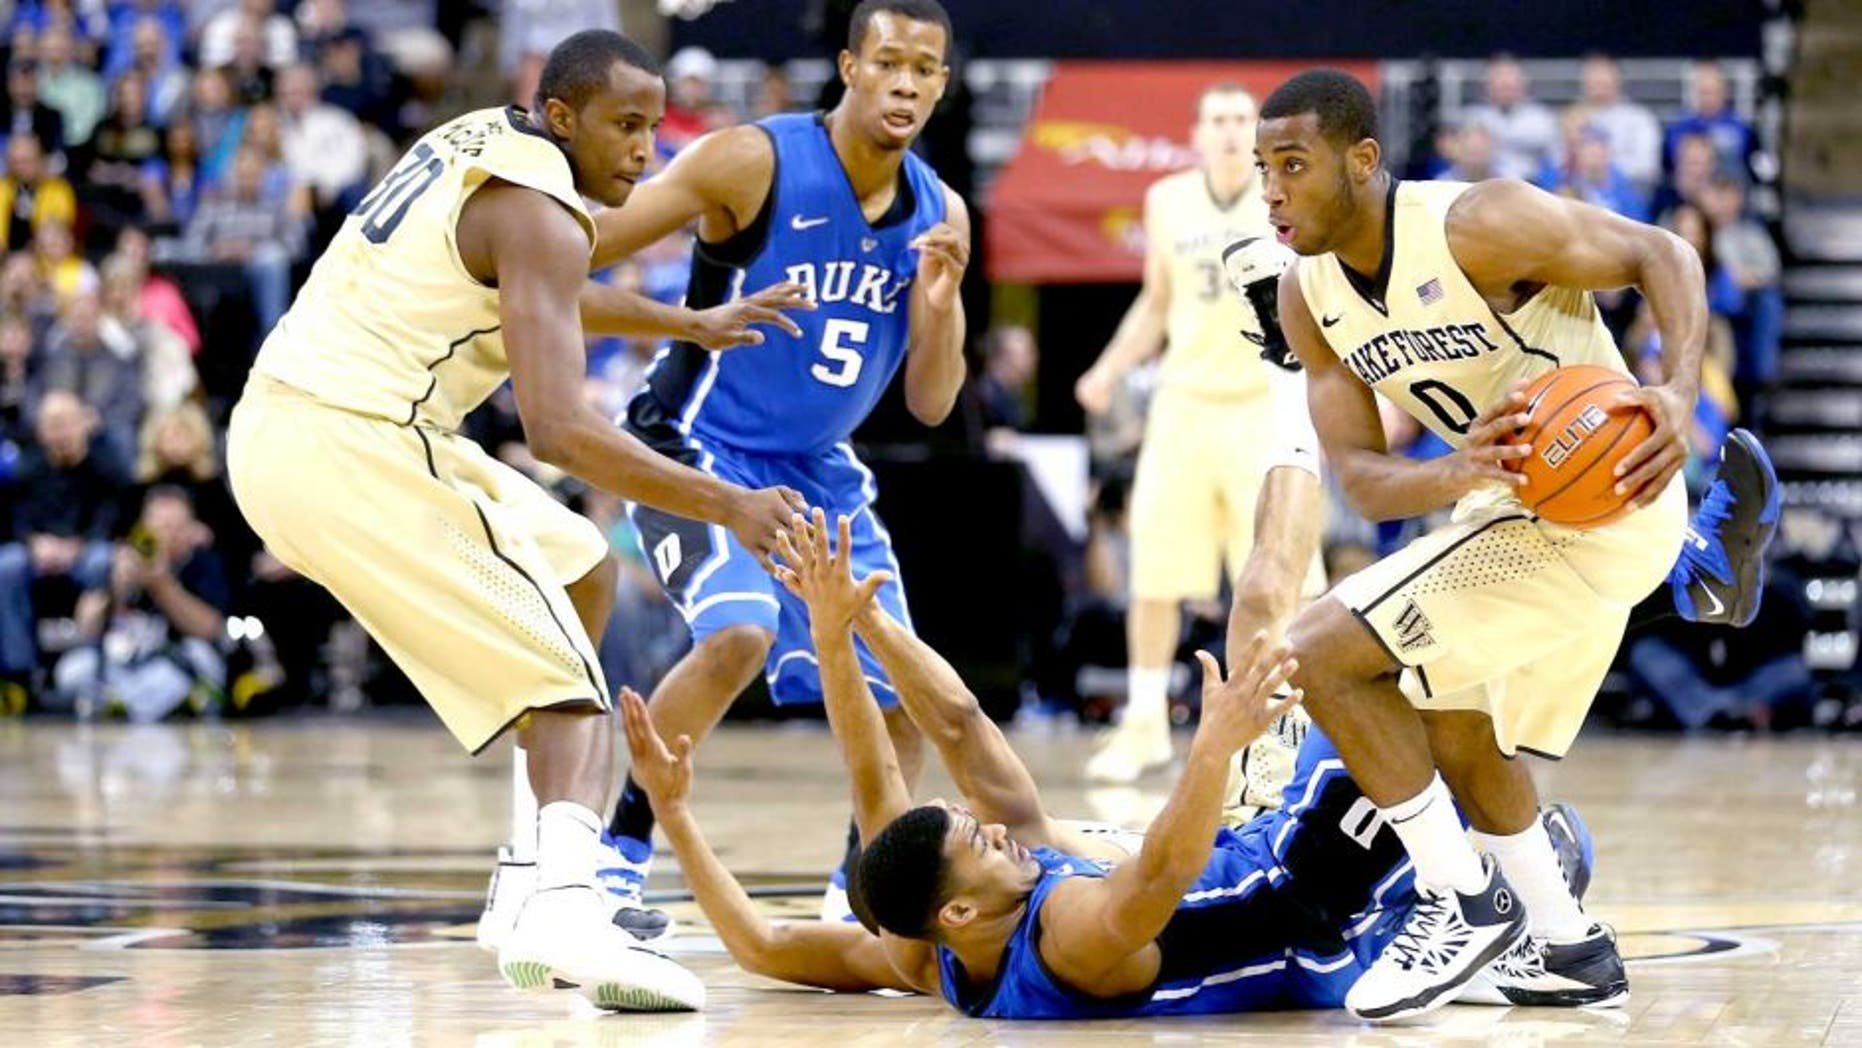 WINSTON-SALEM, NC - MARCH 05: Codi Miller-McIntyre #0 of the Wake Forest Demon Deacons steals the ball from Quinn Cook #2 of the Duke Blue Devils during their game against the Duke Blue Devils at Joel Coliseum on March 5, 2014 in Winston-Salem, North Carolina. (Photo by Streeter Lecka/Getty Images)